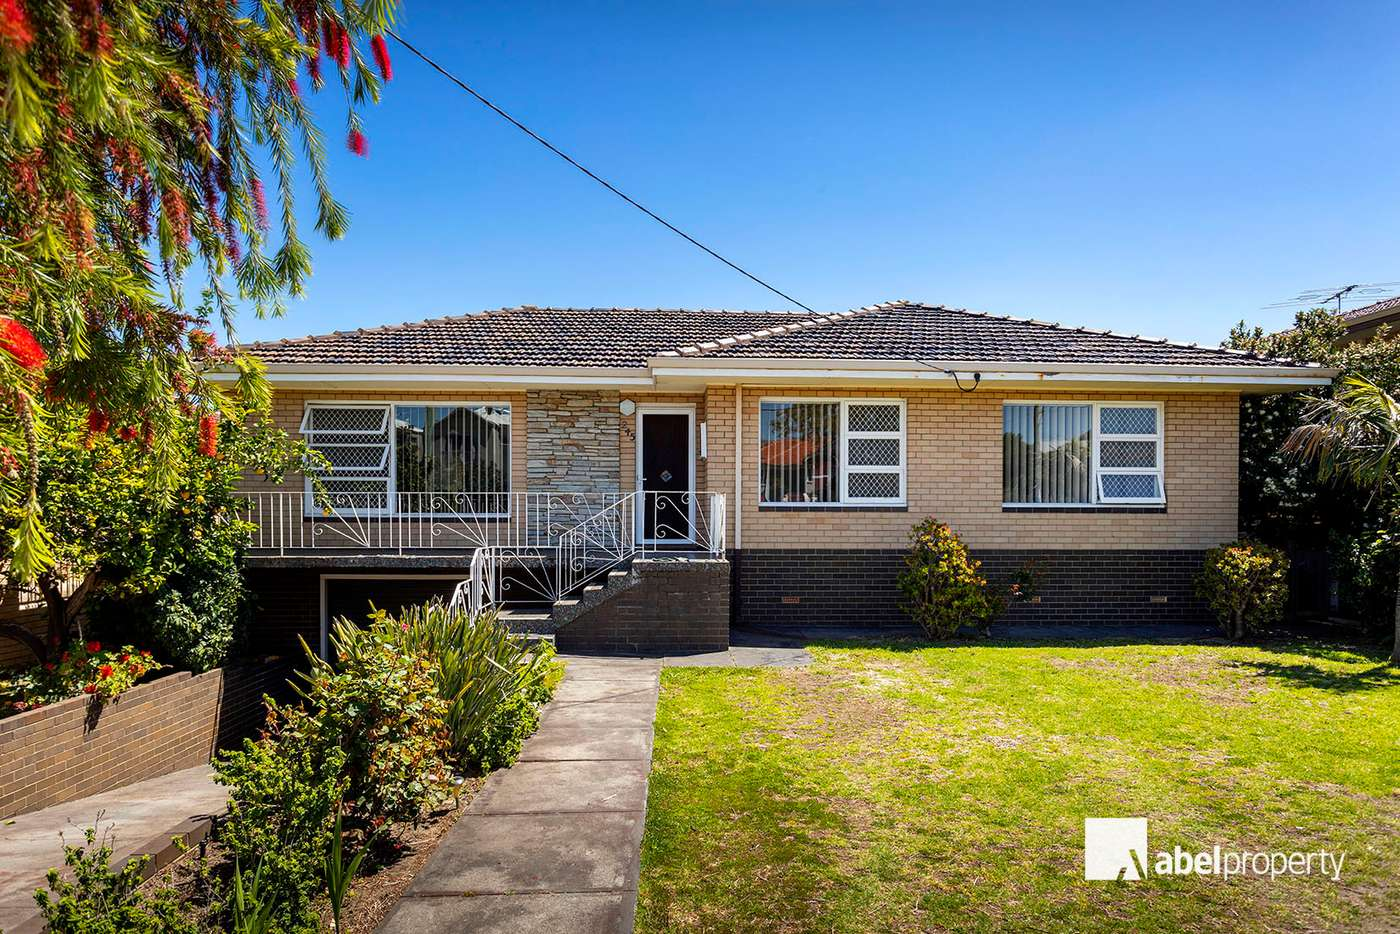 Main view of Homely house listing, 245 Charles Street, North Perth WA 6006